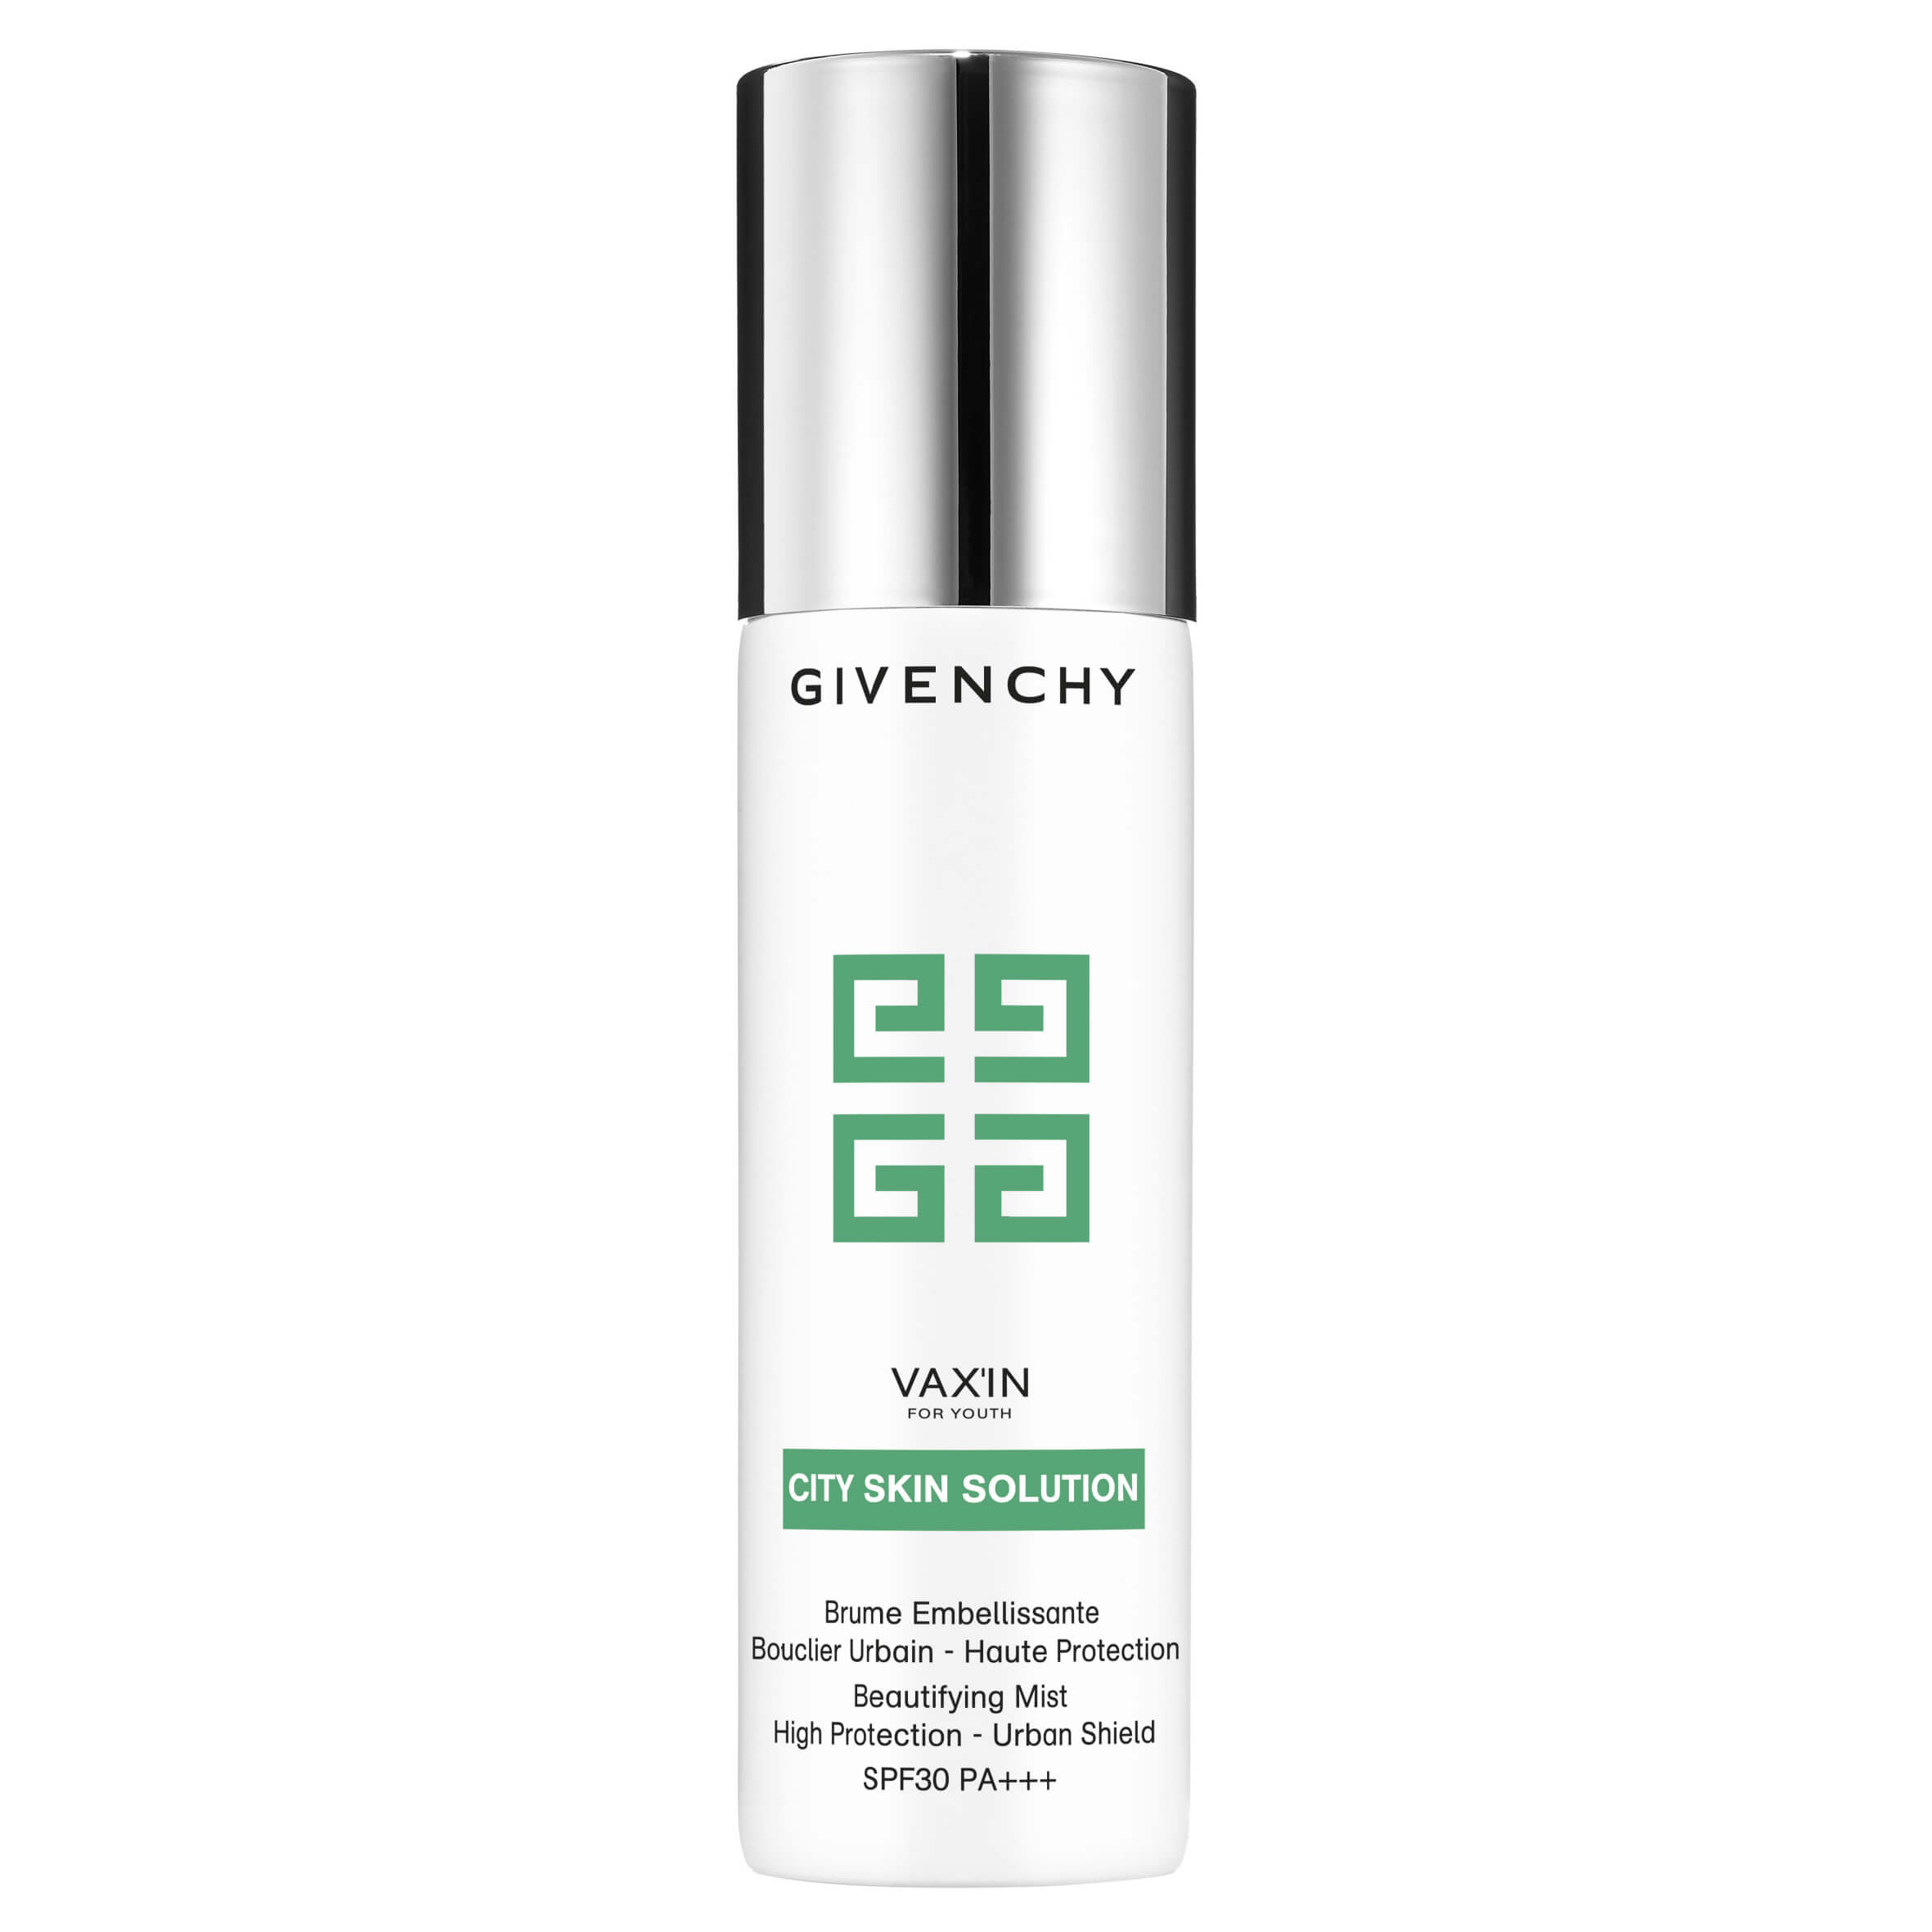 дымка Vax'in for Youth City Skin Solution SPF 30, GIVENCHY